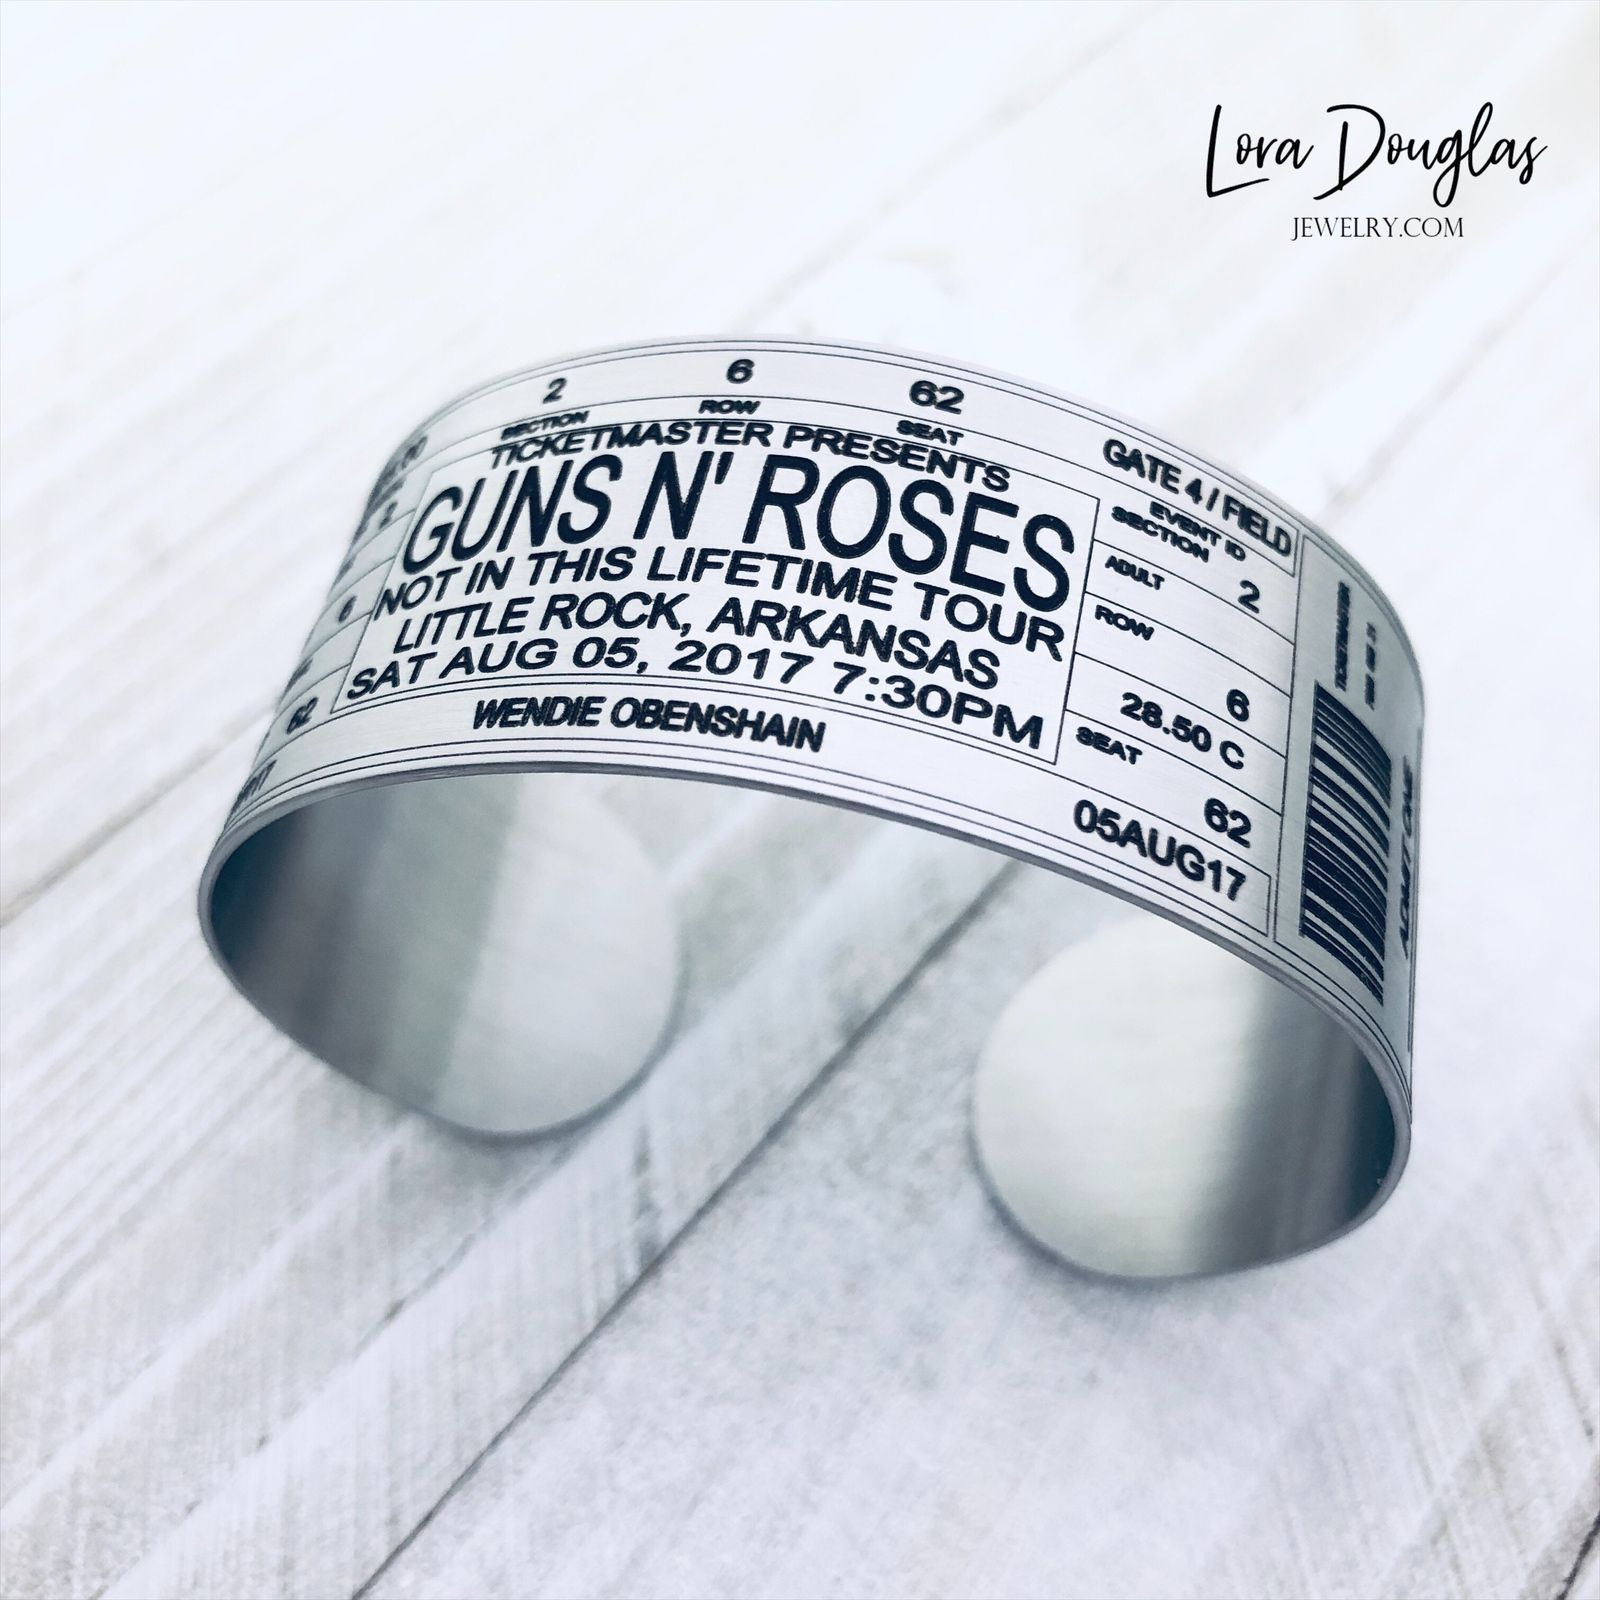 Guns N' Roses • Not In This Lifetime Tour • Little Rock Ark⁠. We can permanently laser engrave any ticket on a #bracelet #bookmark or #keychain • Link in Bio  #concert #livemusic #music #laserengraving #favoritesong #myloradouglasjewelry #rocknroll #engraving #axlrose #headbangersball #handmade #ticket #mtv #the80s #musicphotography #jewelry #jewelryisfun #concertphotography #gunsnroses #gnr #slash #rock #notinthislifetime #gnfnr #amplified #metallica #aerosmith #bonjovi #defleppard #vanhalen